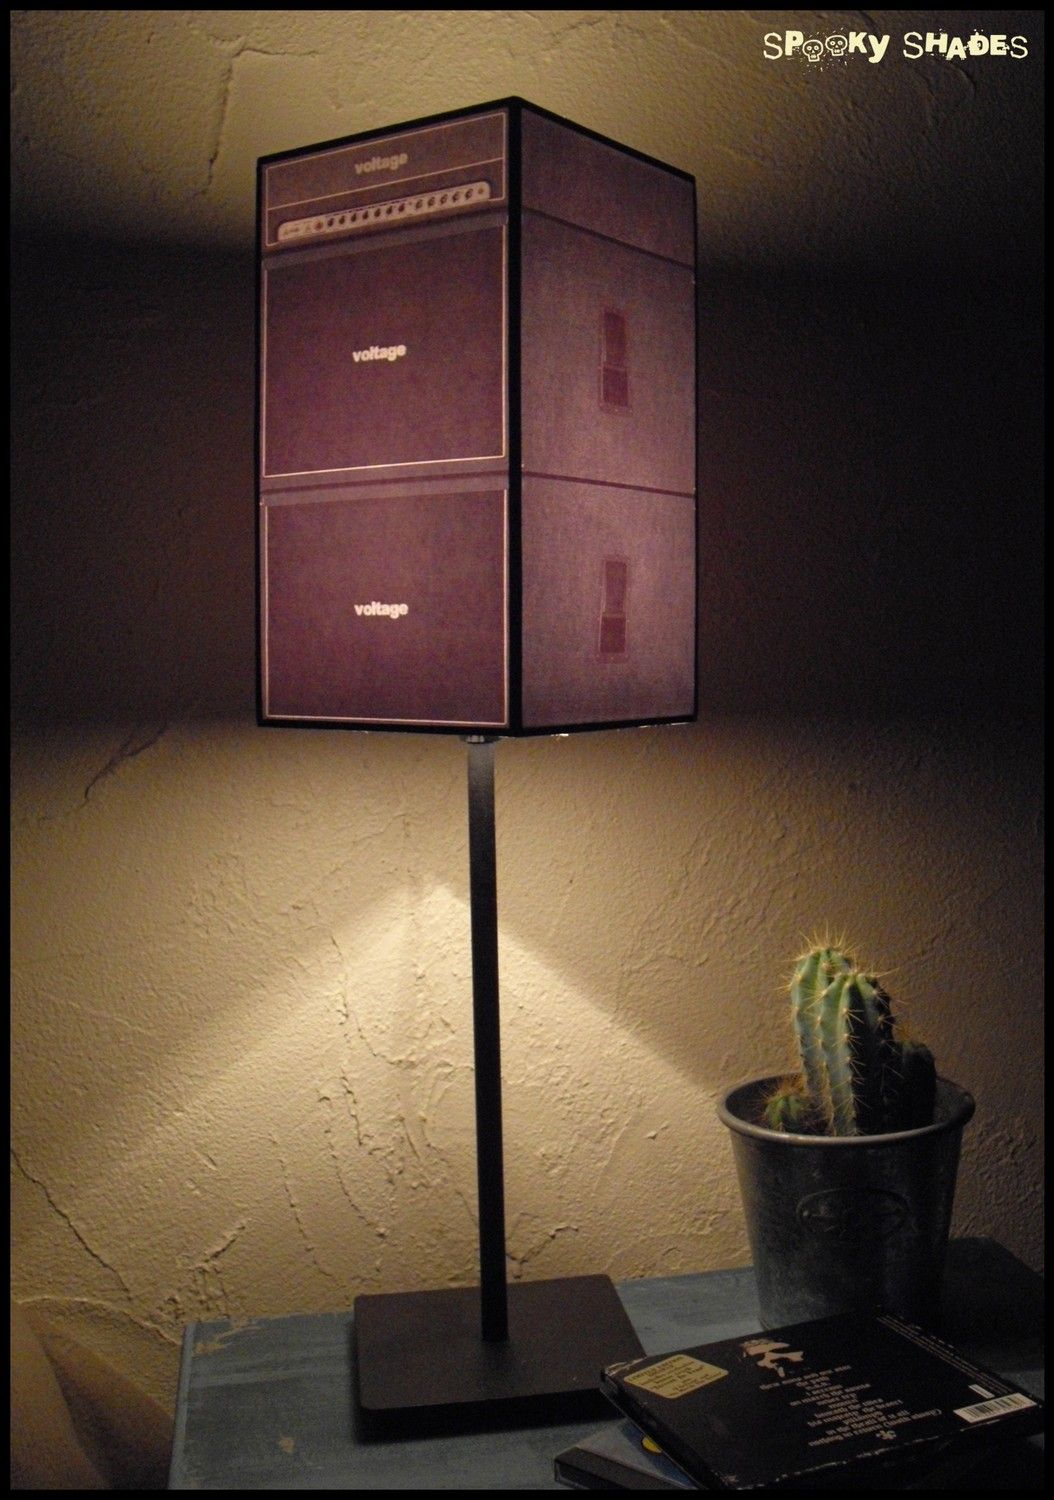 Guitar Decor For Bedroom Guitar Amp Lampshade Lamp Shade Rock N Roll Decor Dorm